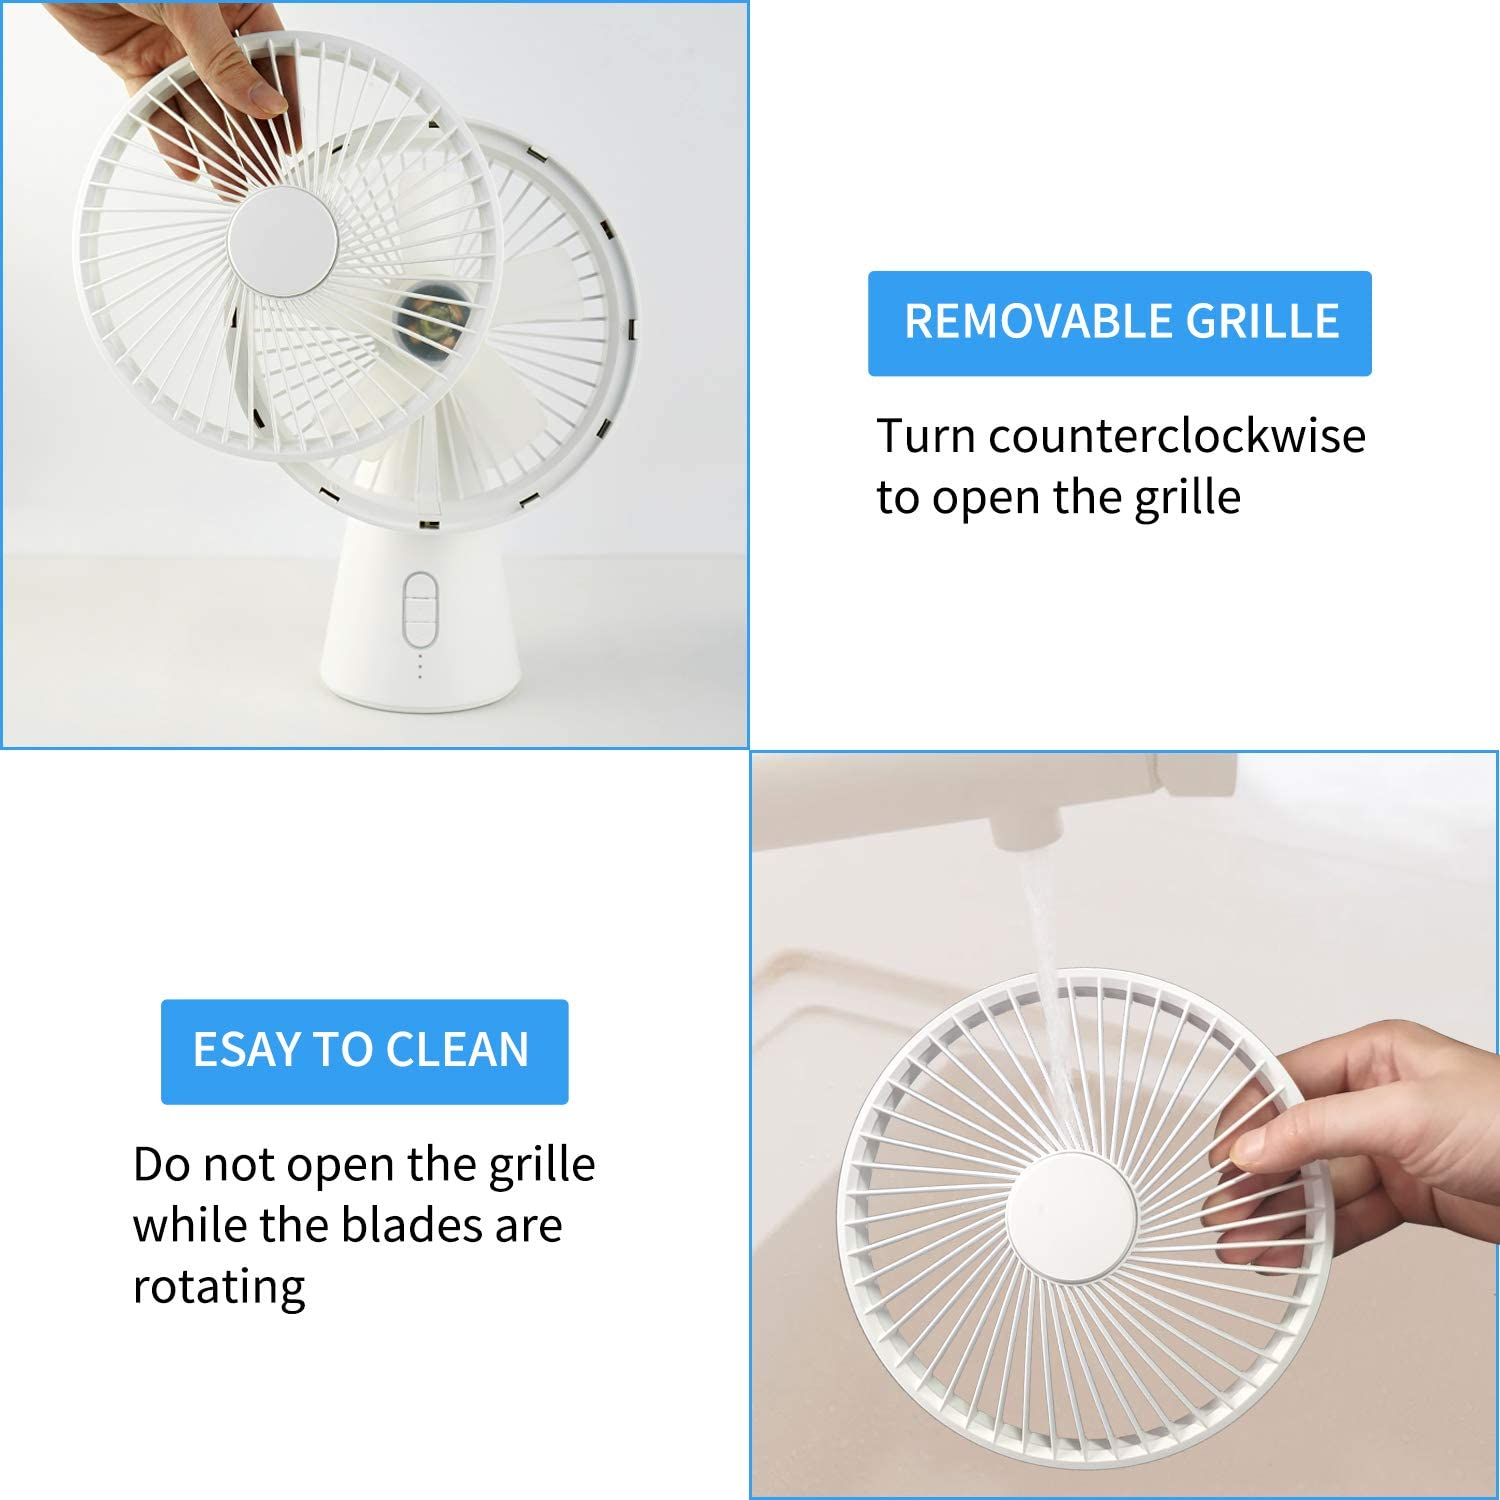 USB Air Circulator Desk Fan Oscillating Quiet Rotary Head Essential Oils Small Rechargeable Table Fan for Dorm Office for Bedroom LED Warm Light 4000mAh Battery Powered Bedroom Fans with 3 Speeds